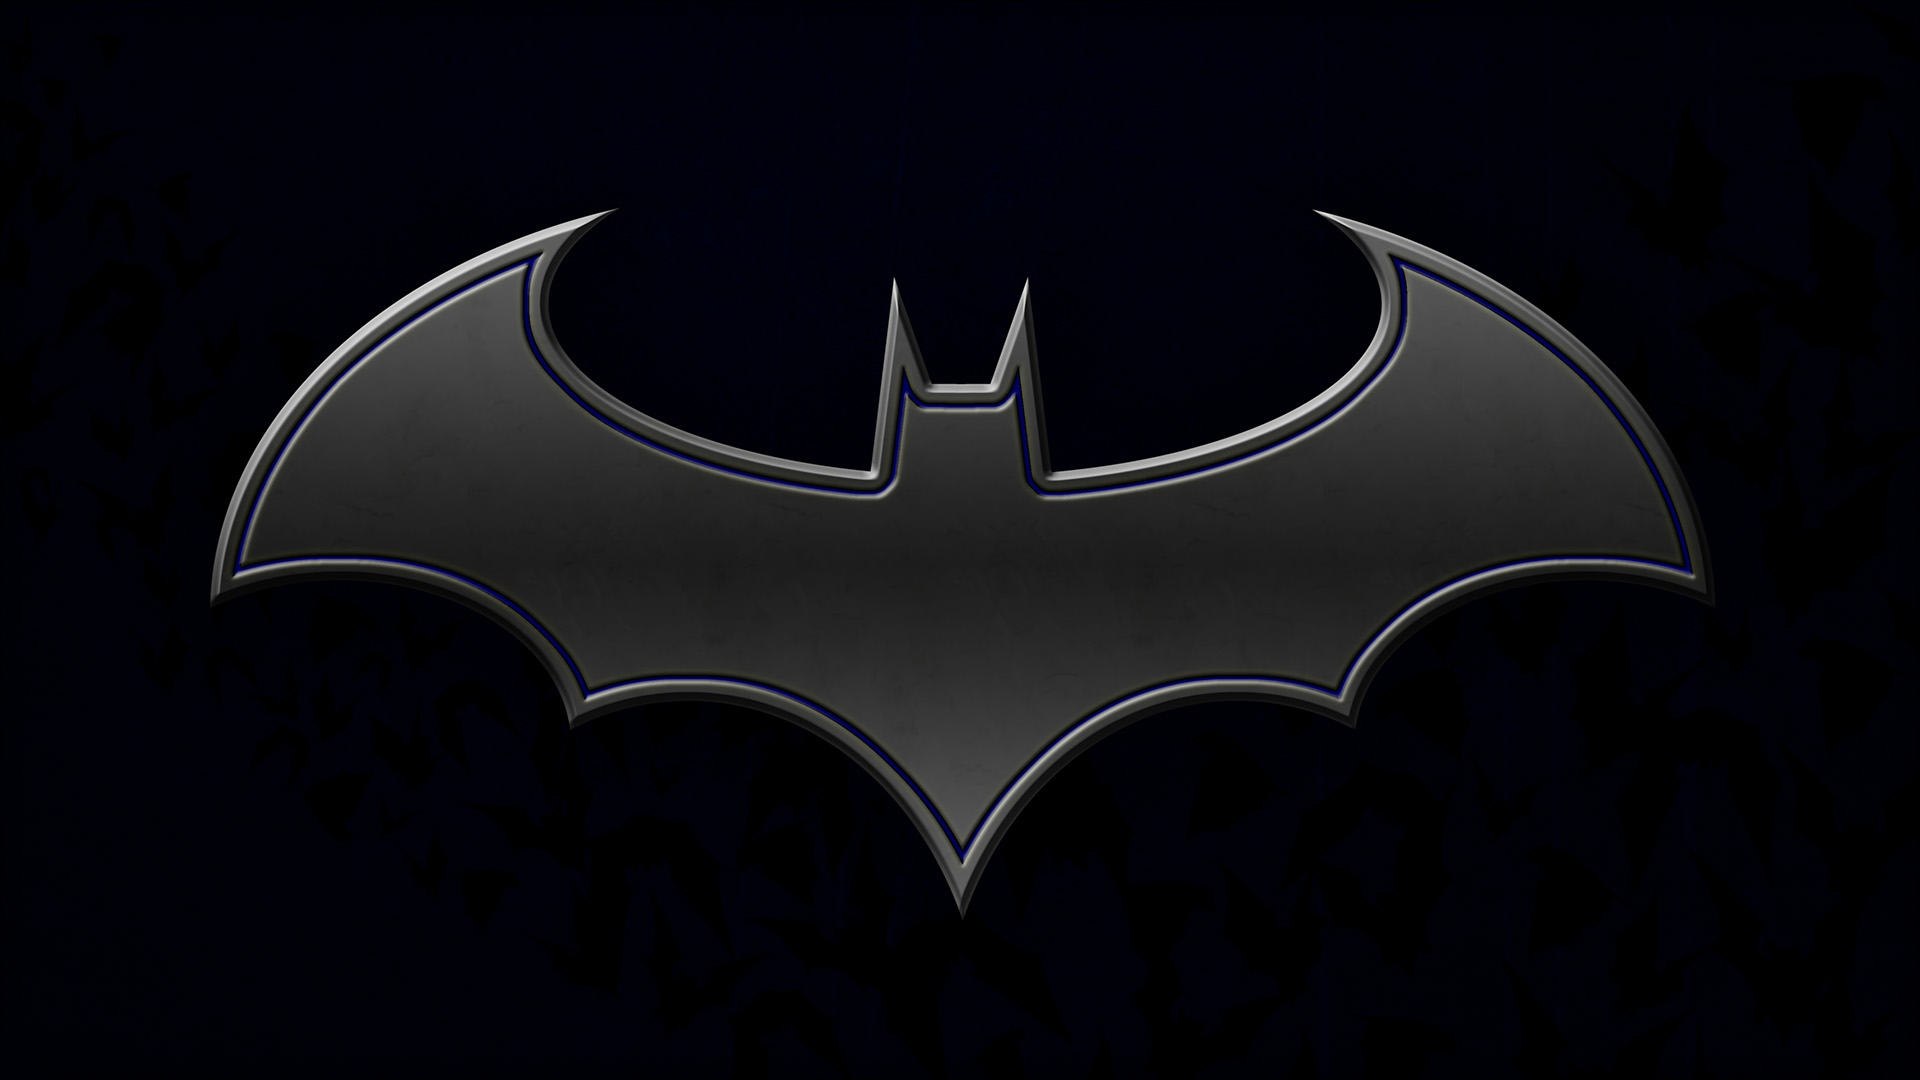 batman logo hd wallpaper   Background Wallpapers for your 1920x1080